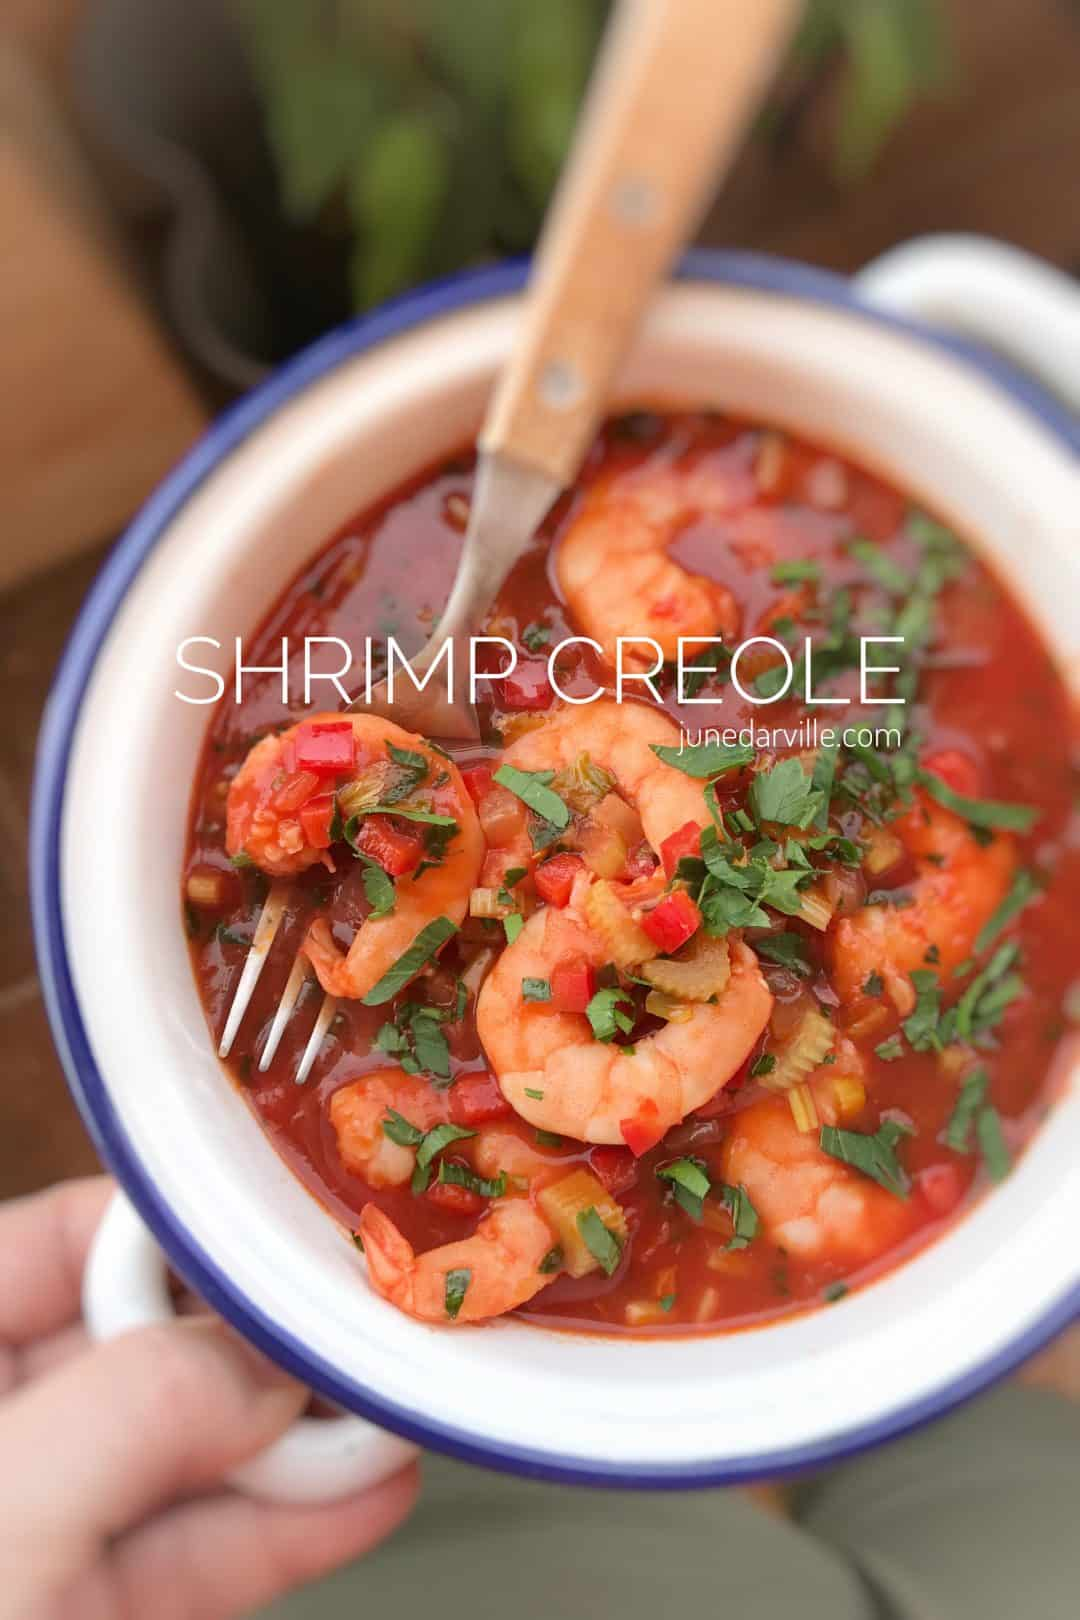 This shrimp creole recipe is a Creole dish of cooked shrimp in a sauce of tomatoes, onion, garlic, celery, bell pepper and cayenne pepper!